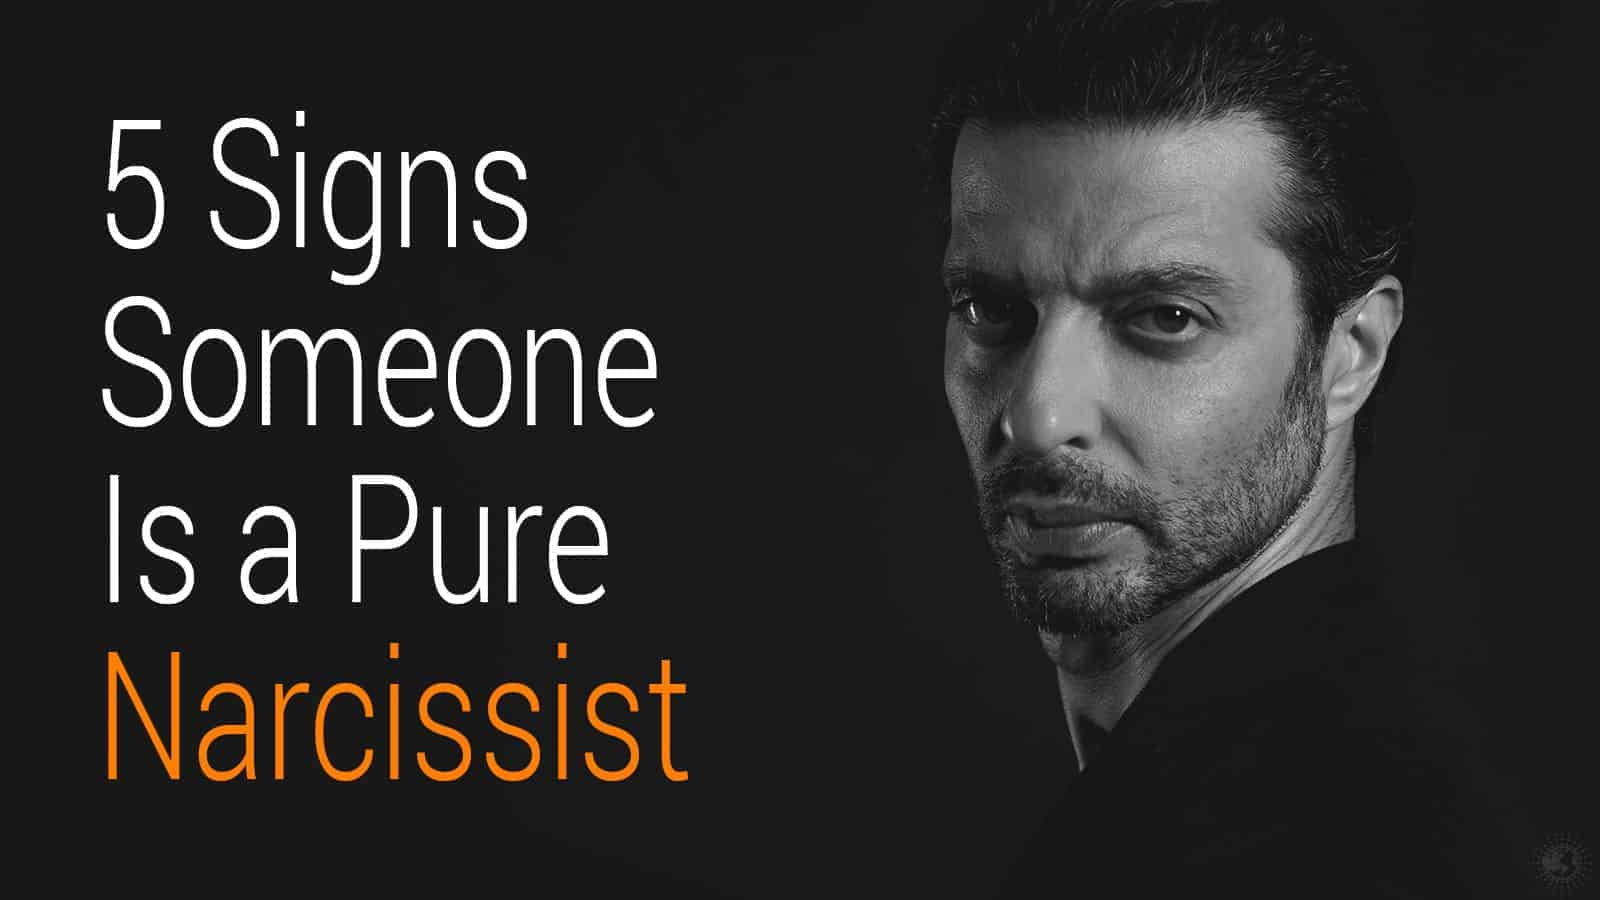 5 Signs Someone is a Pure Narcissist | Power of Positivity